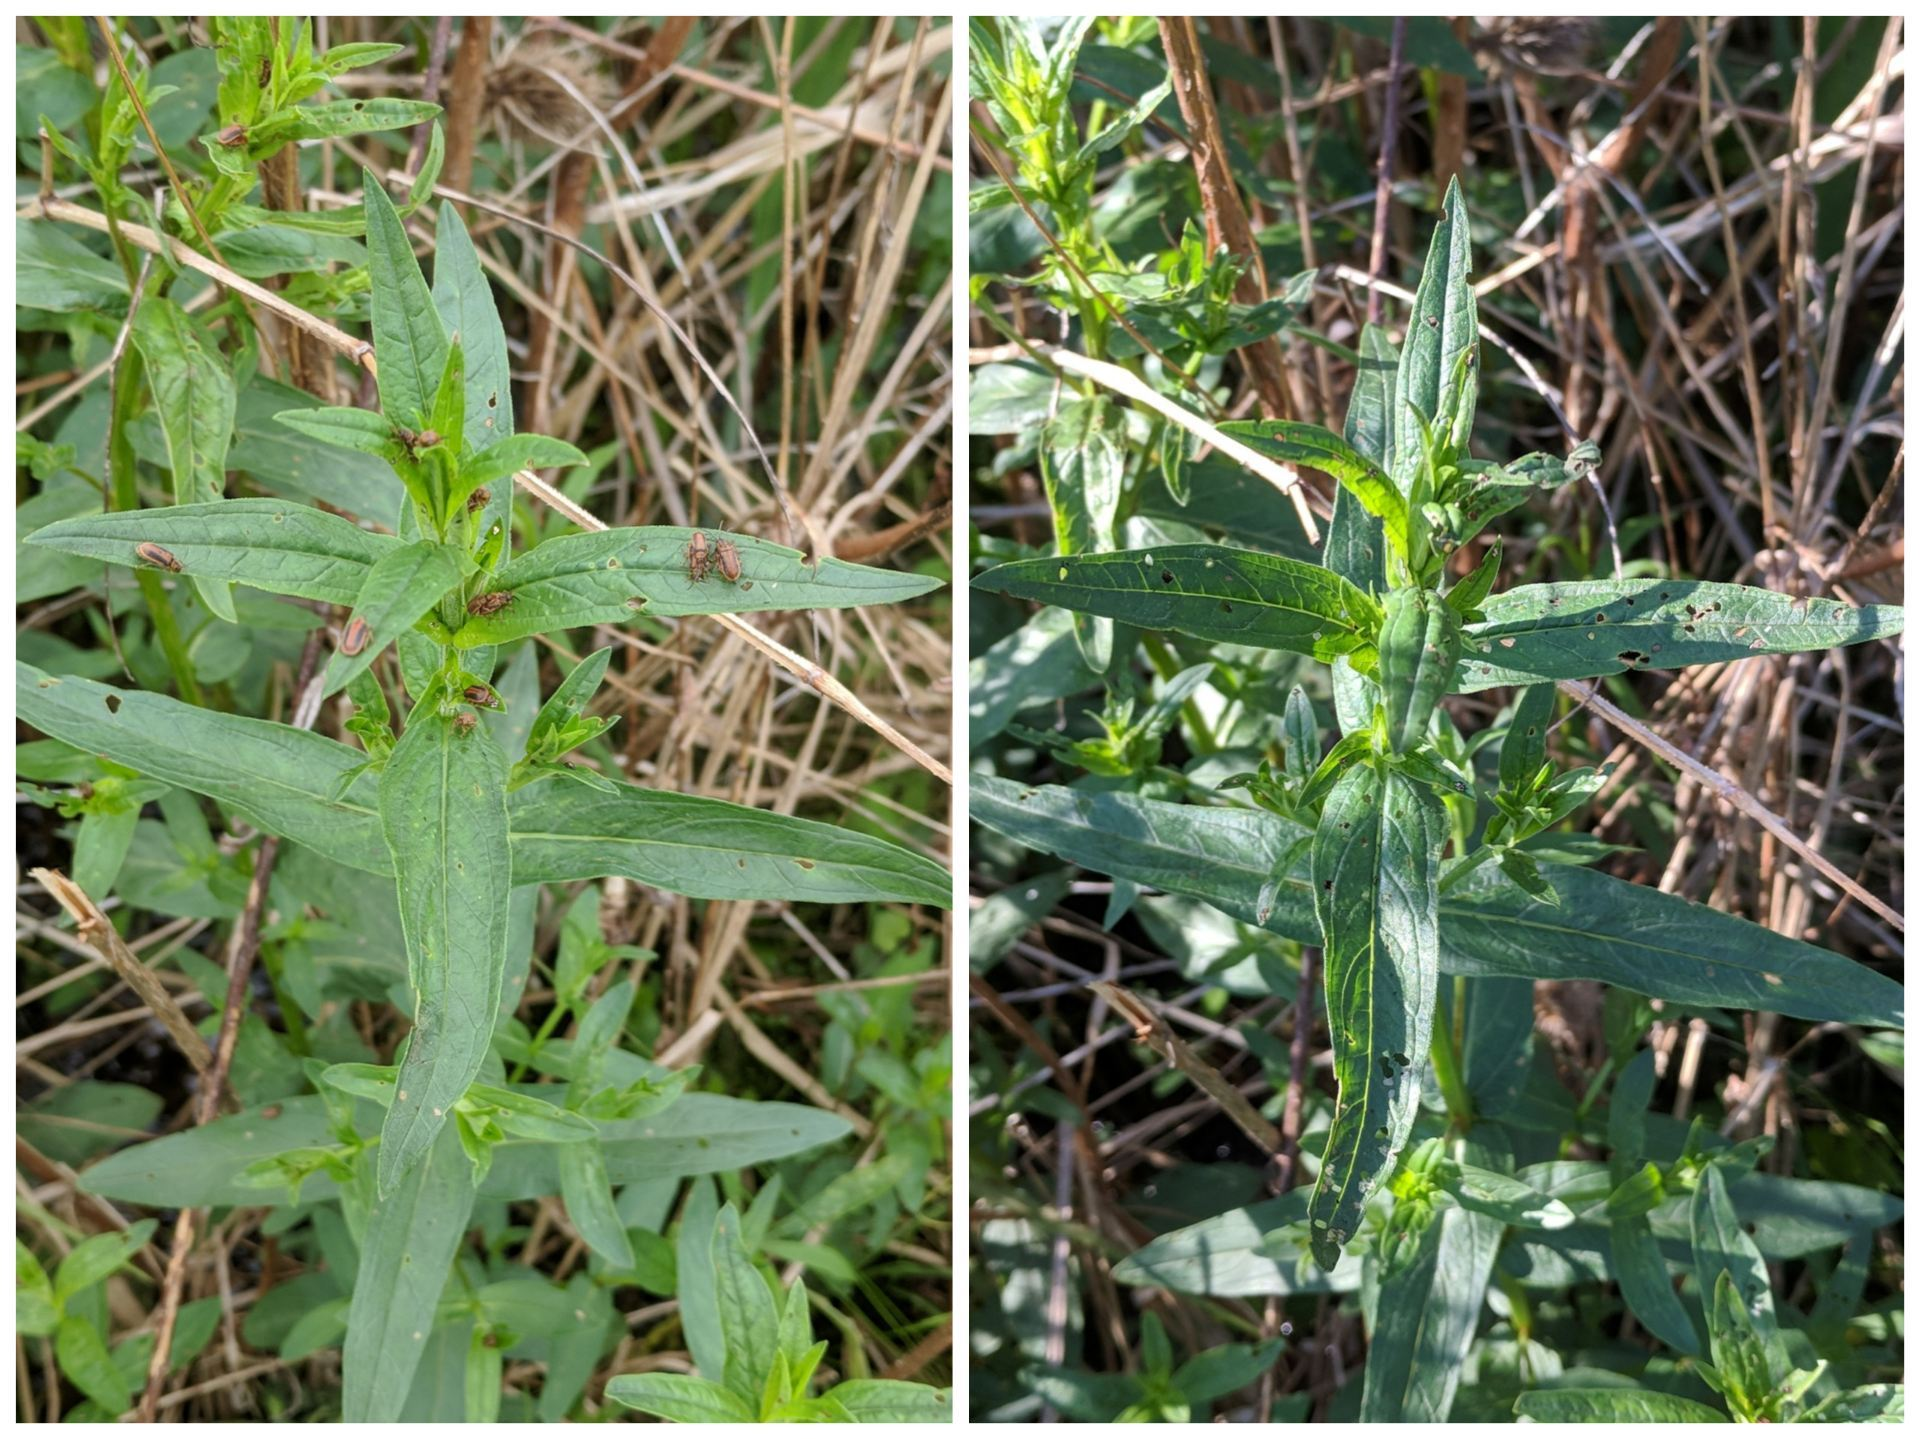 Damage to a purple loosestrife plant by beetles at the release (left) and one day later (right).